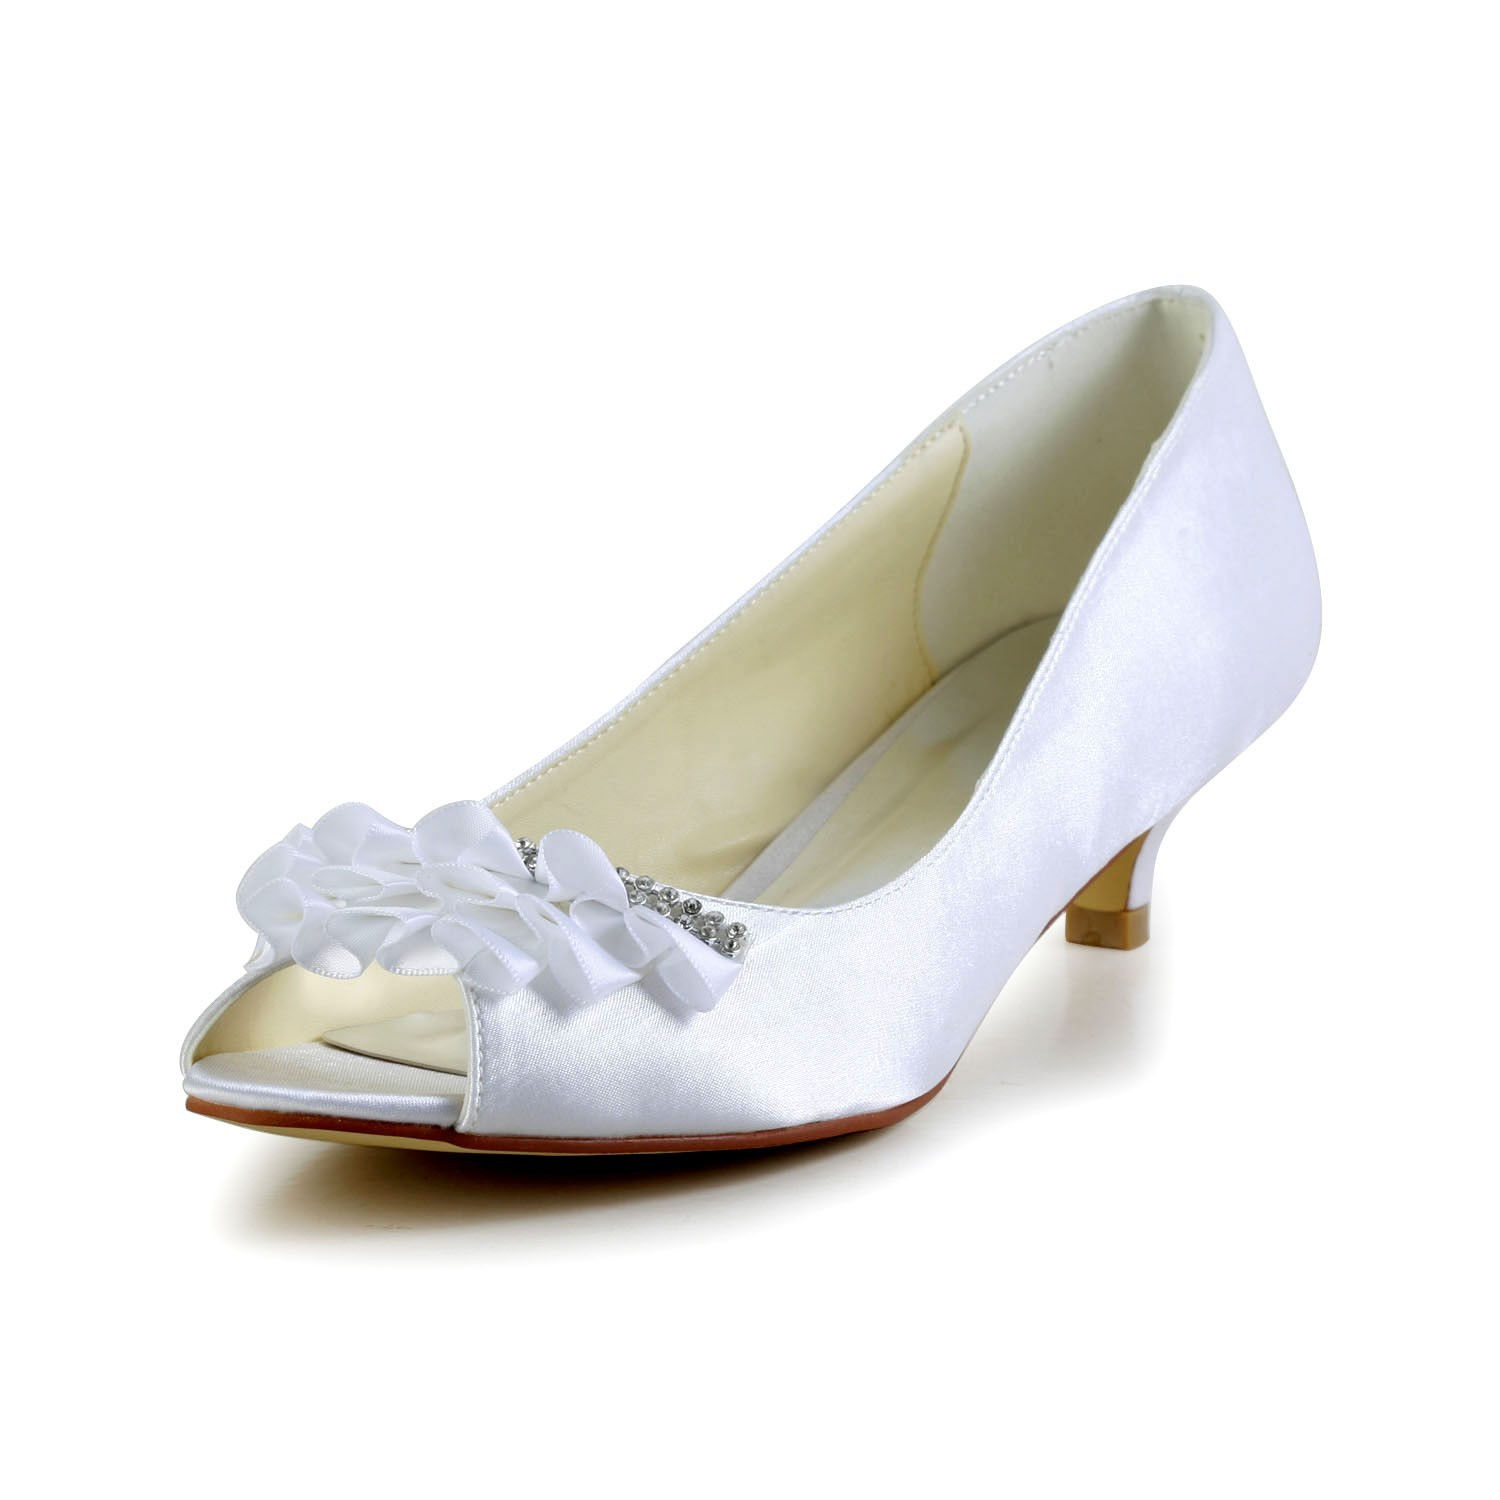 Off White Dress Shoes With Pearls Size